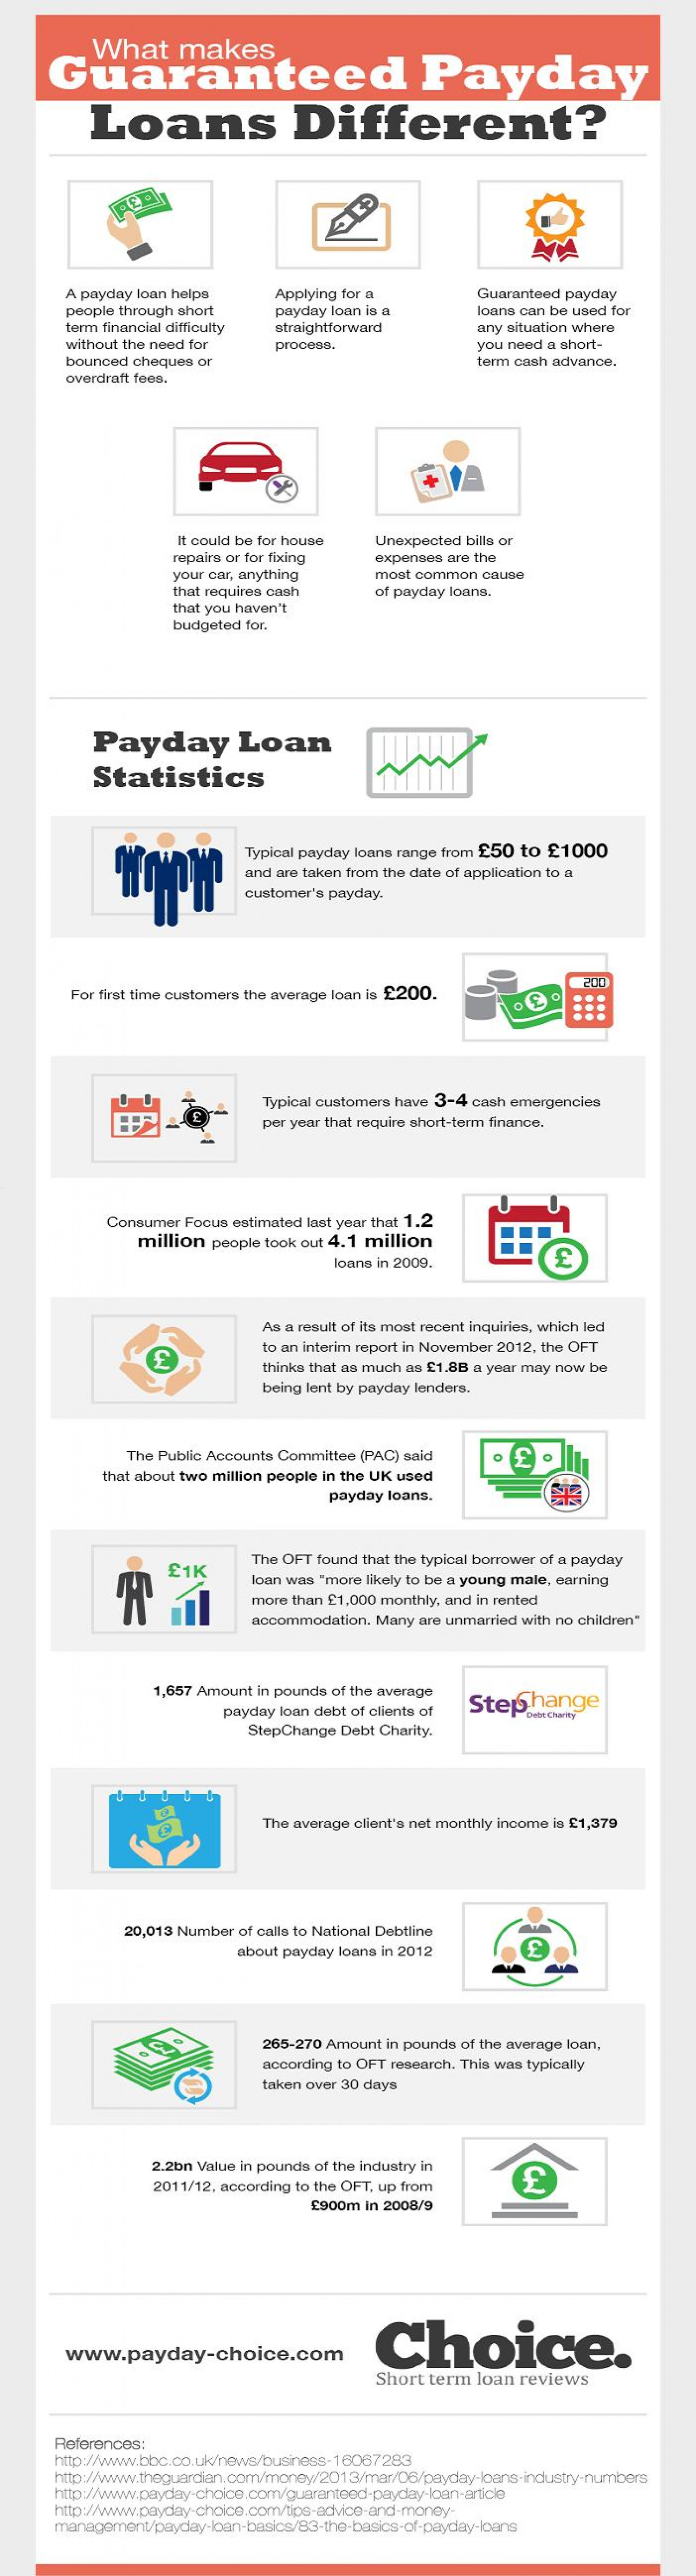 What makes Guaranteed Payday Loans Different? Infographic